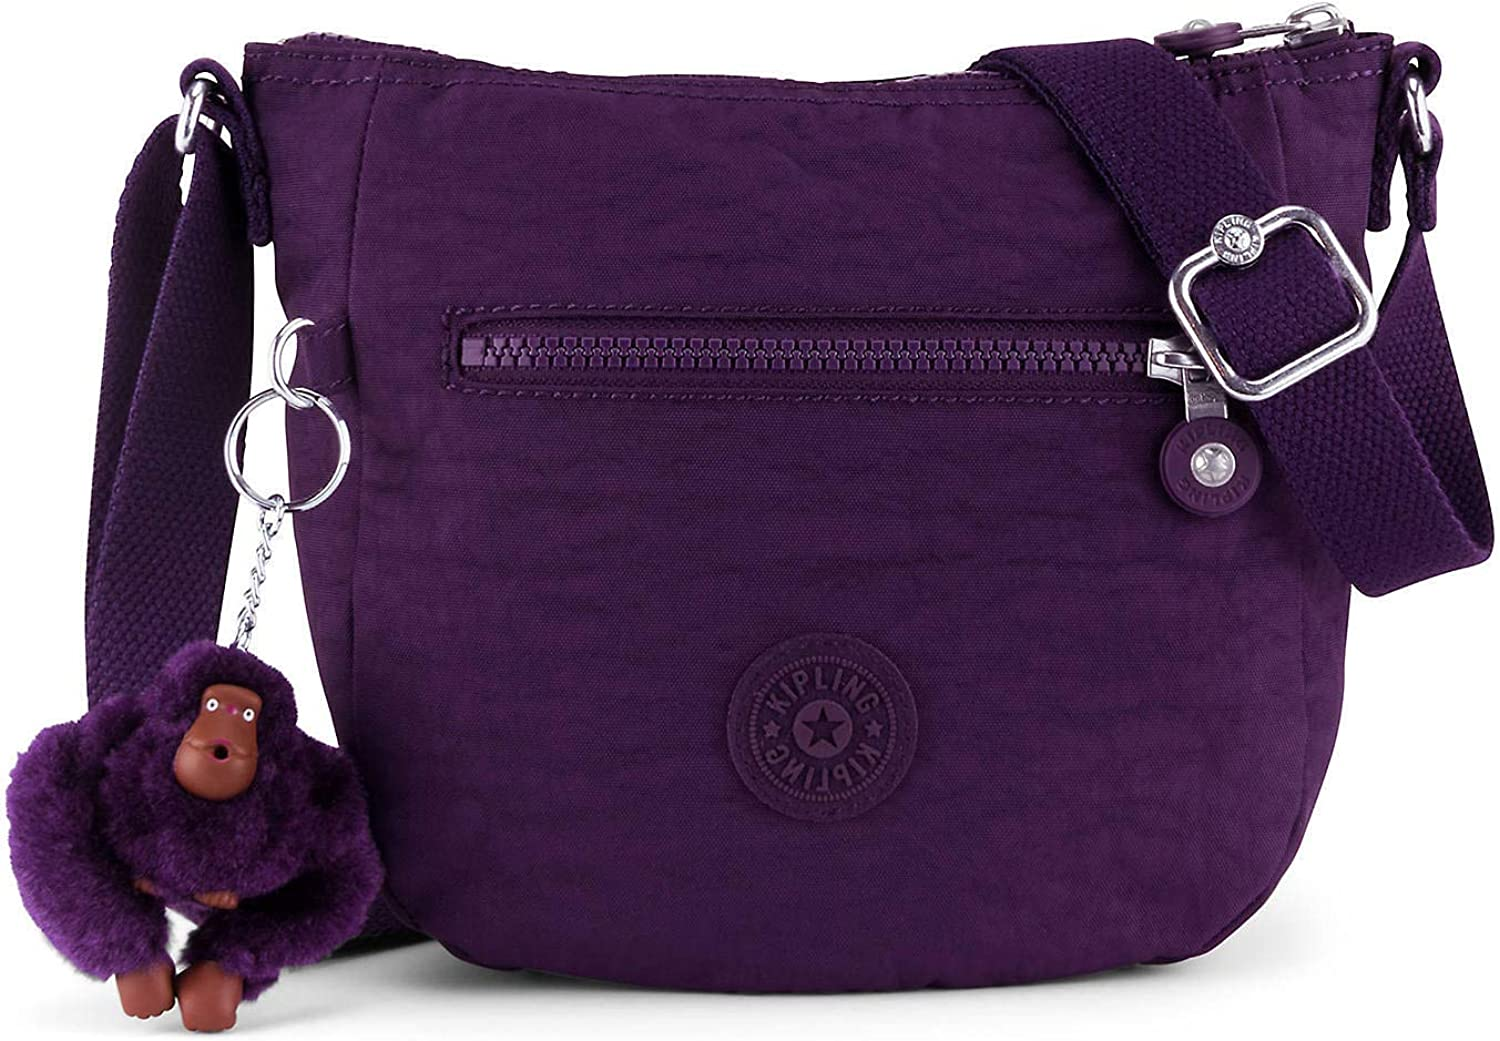 Kipling Bailey Saddle Bag...